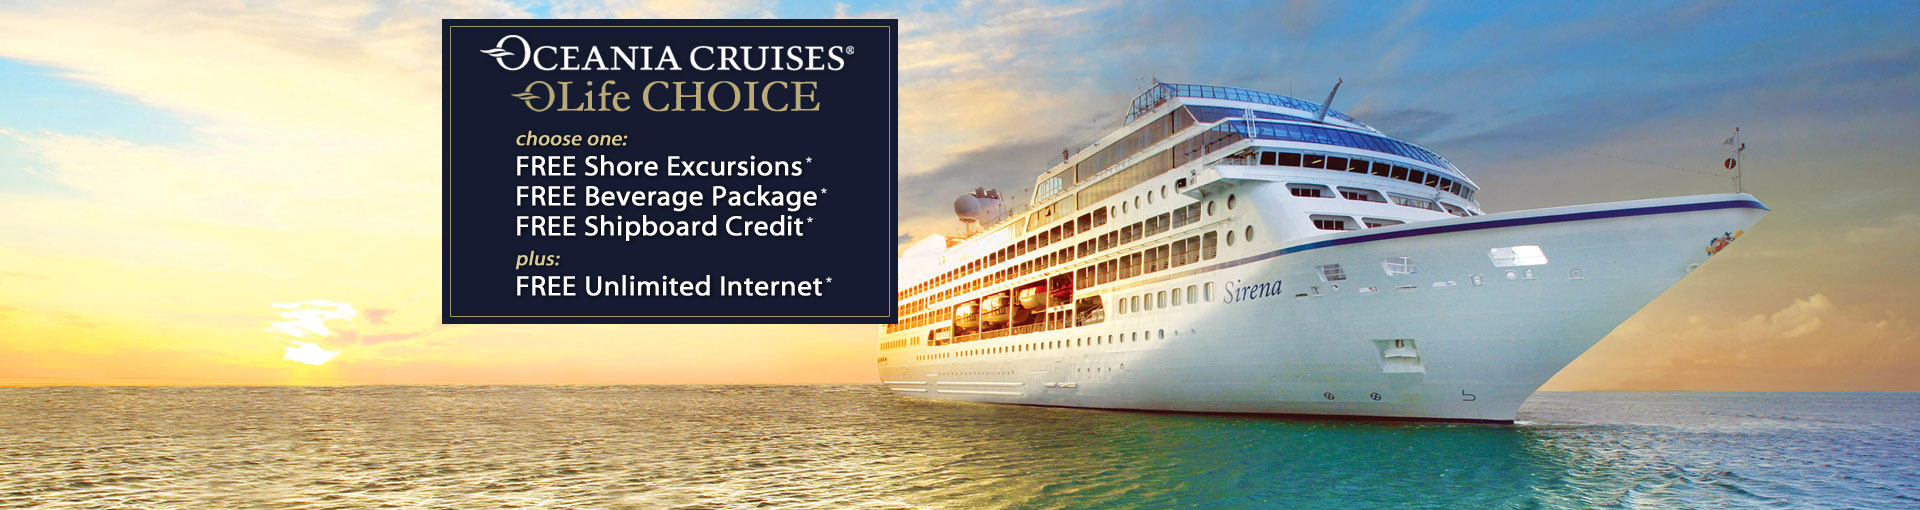 Oceania Cruise Specials - OLife Choice Sale | The Cruise Web